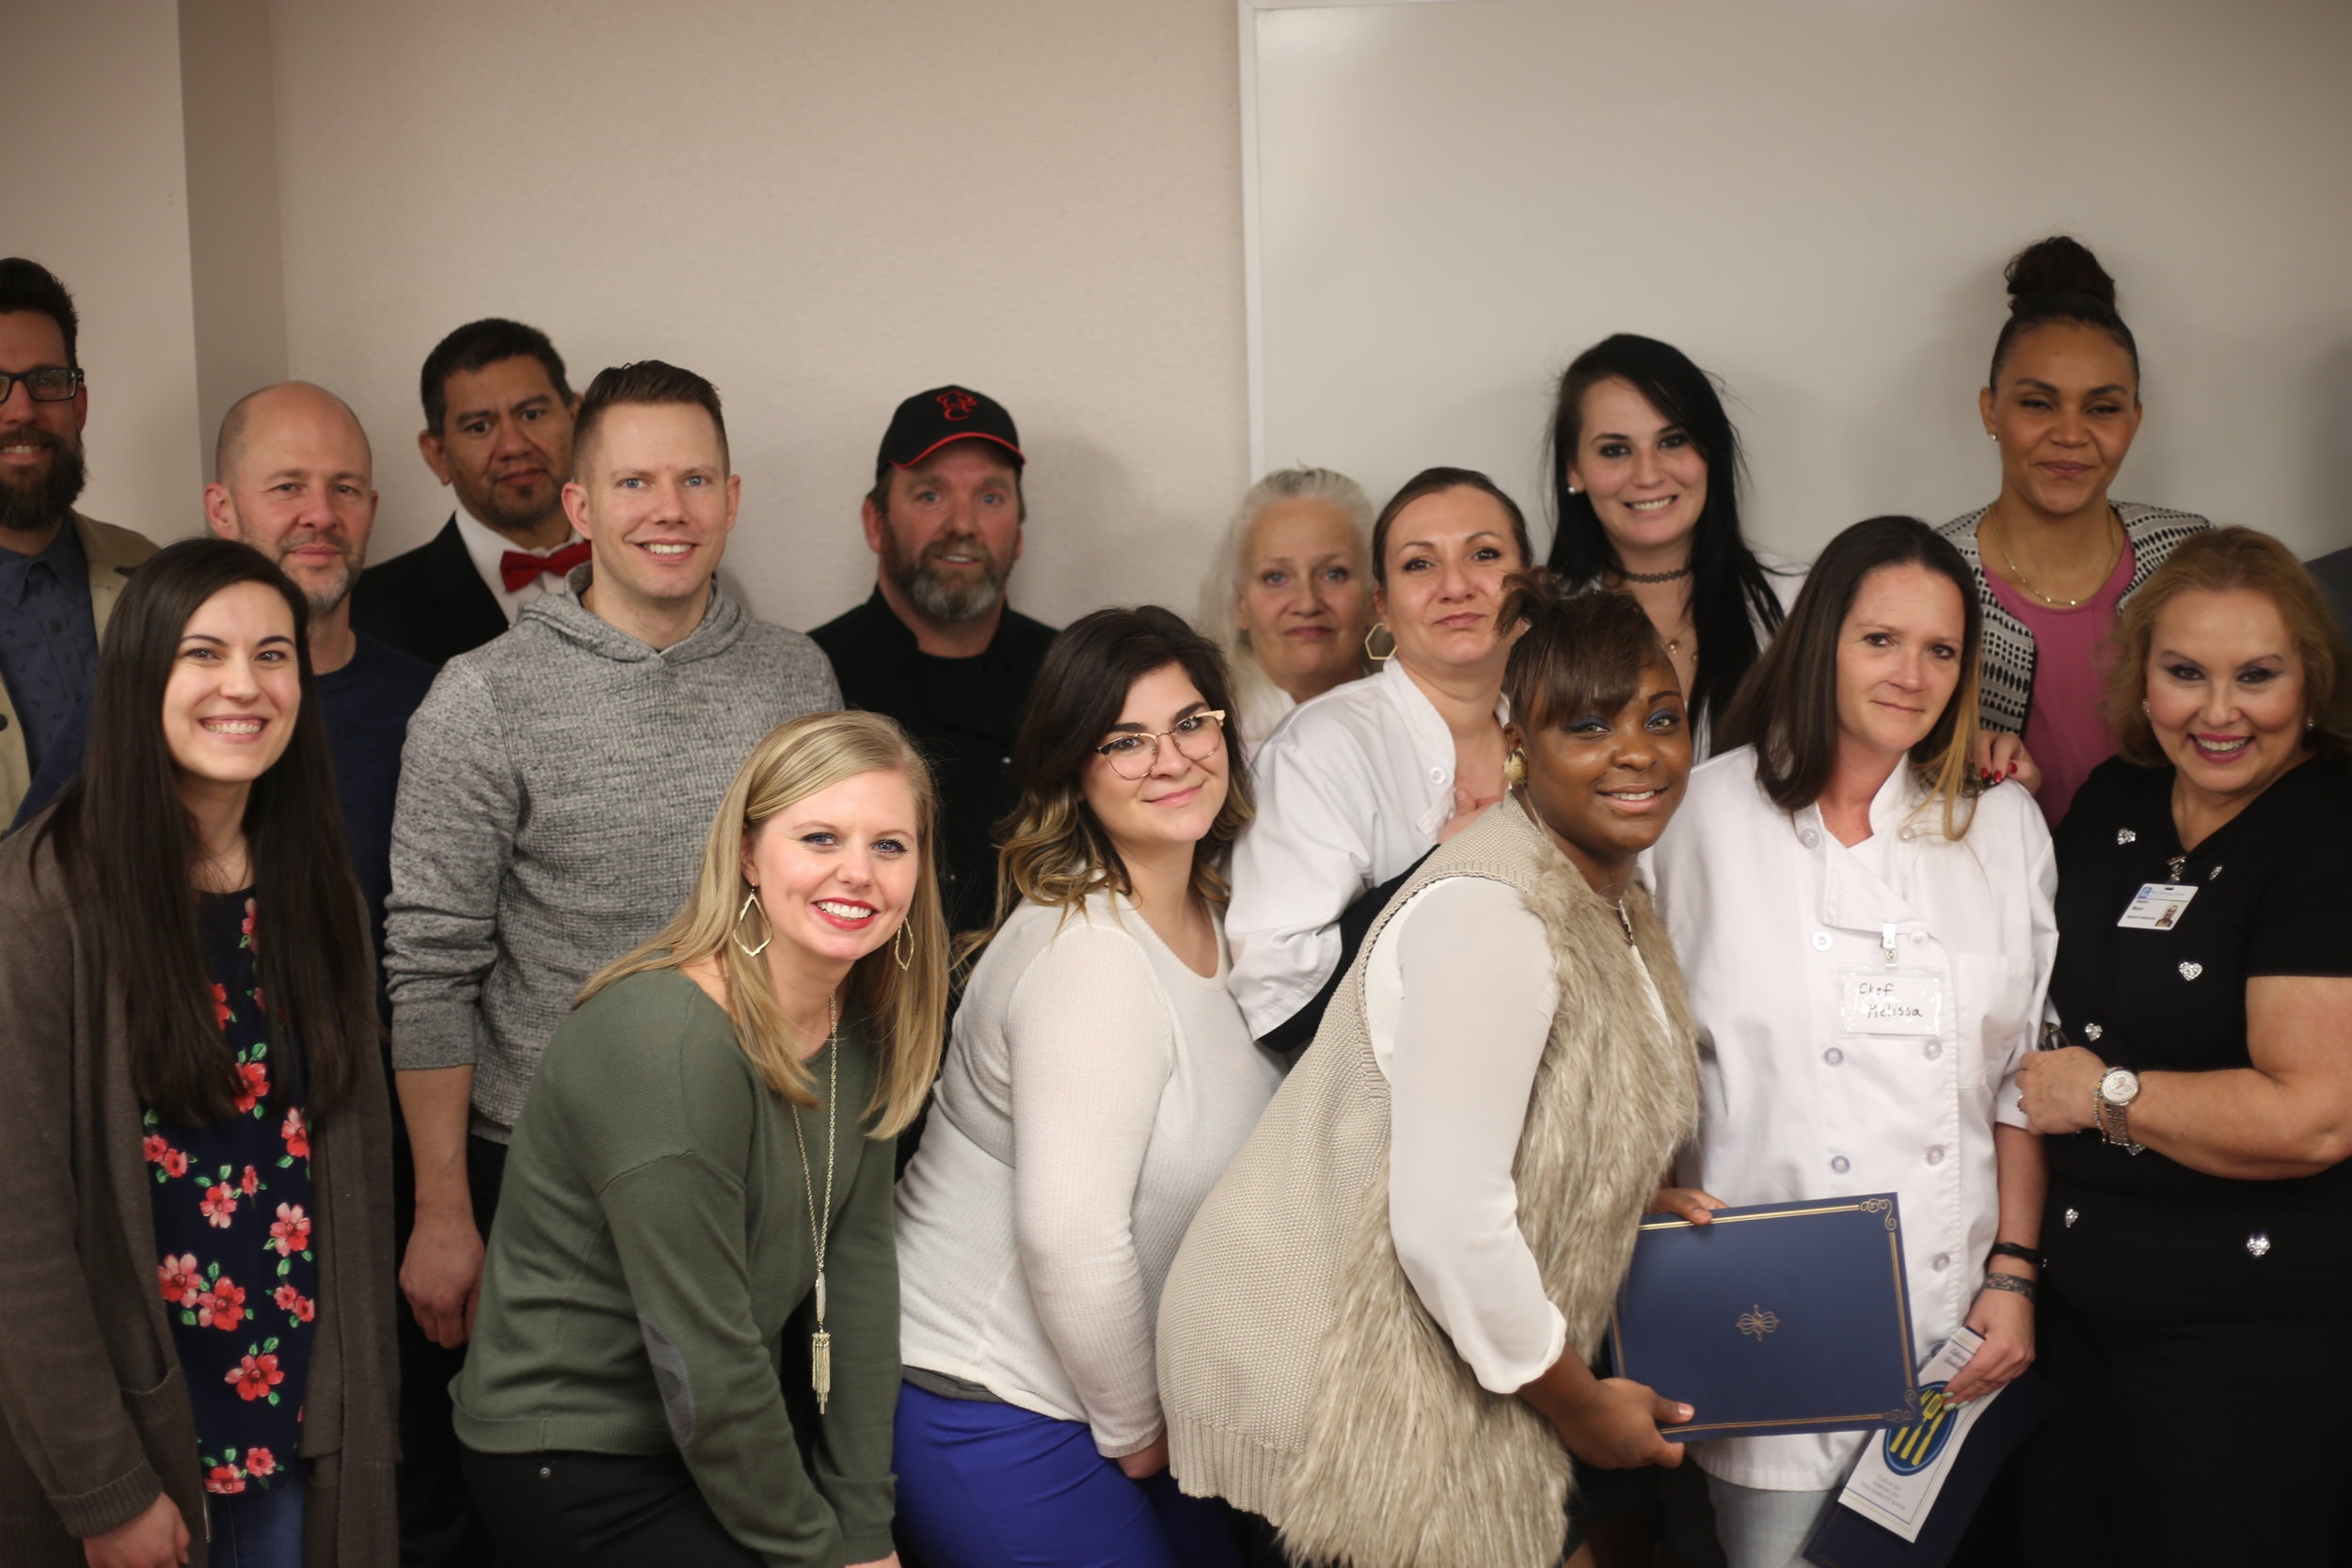 TEEM Staff, LifeChurch Partners and Culinary Graduates